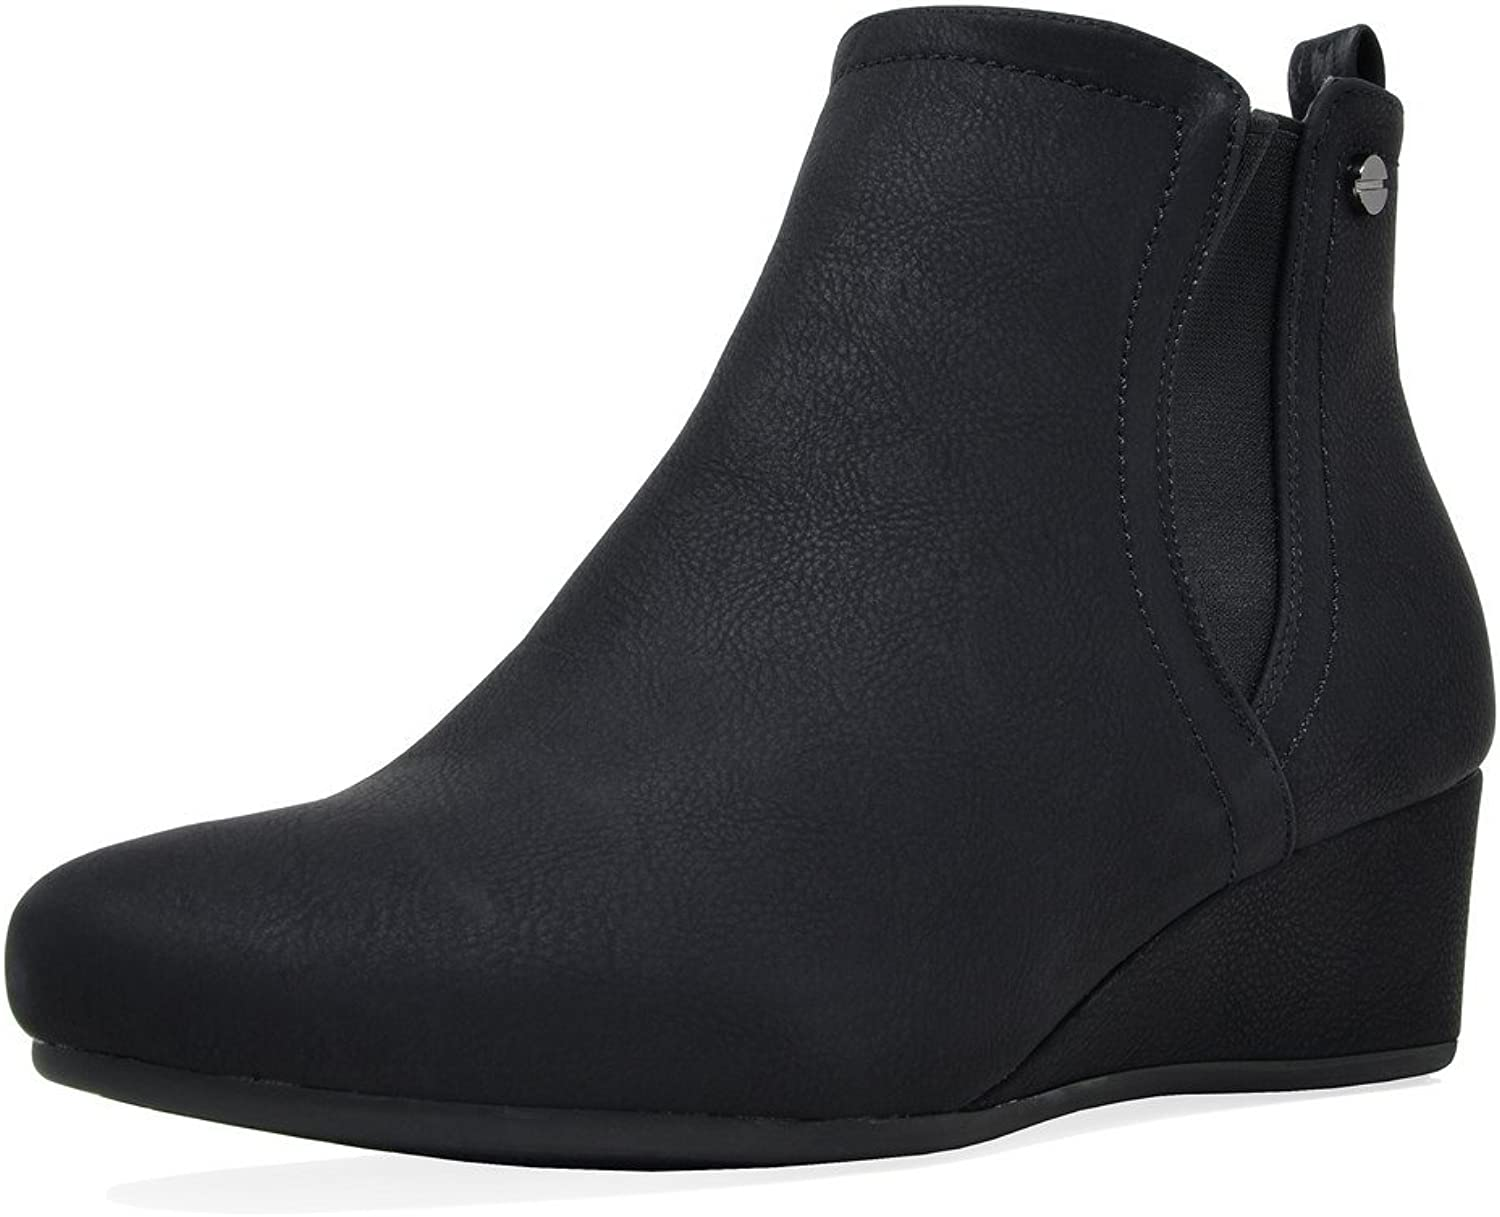 DREAM PAIRS Women's New-Zoie Low Wedge Ankle Boots